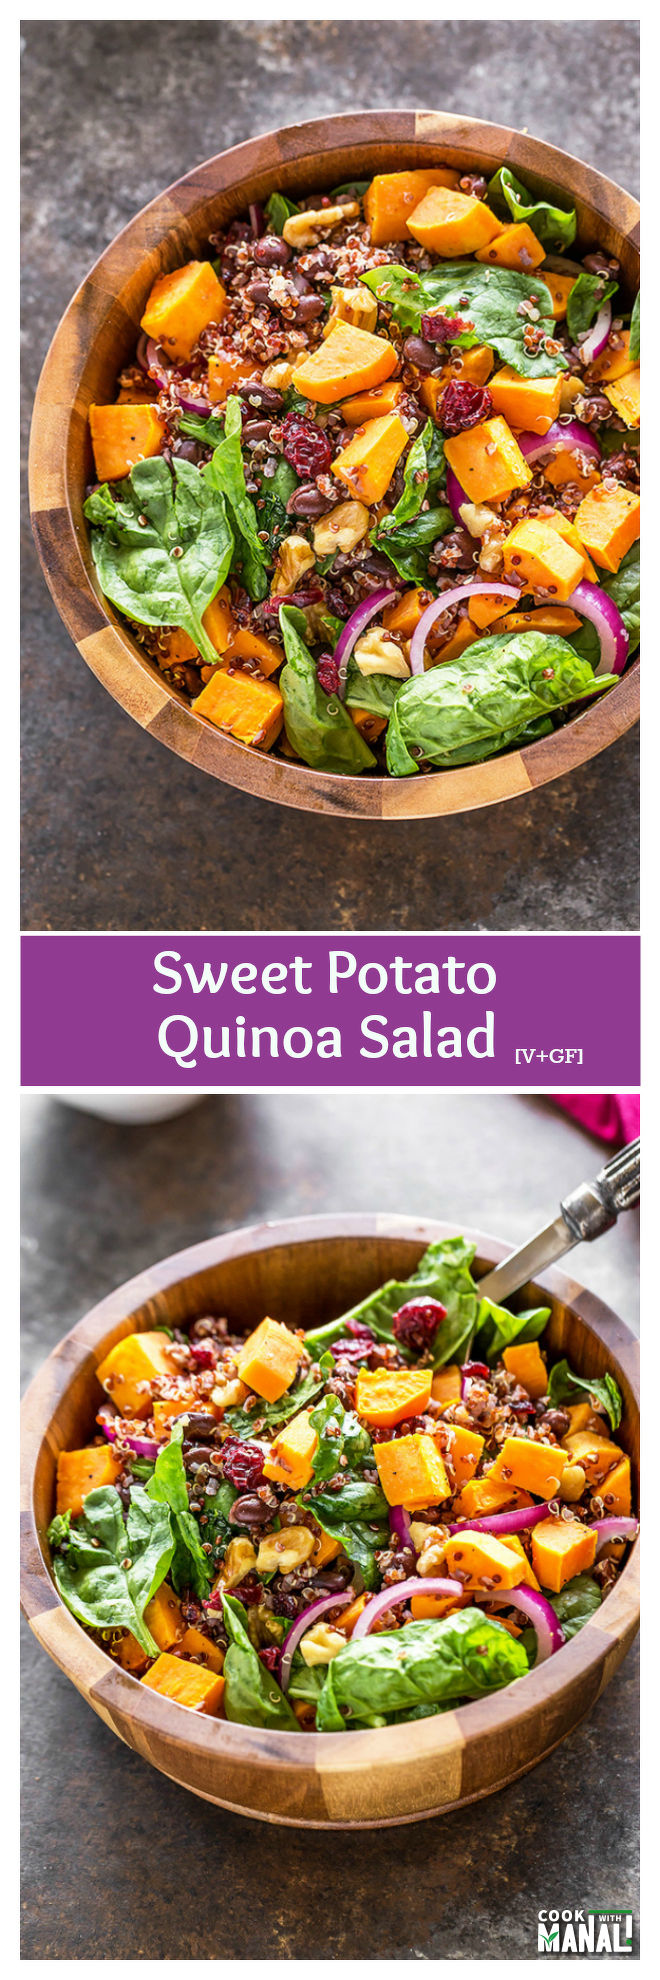 Sweet Potato Quinoa Salad - Cook With Manali